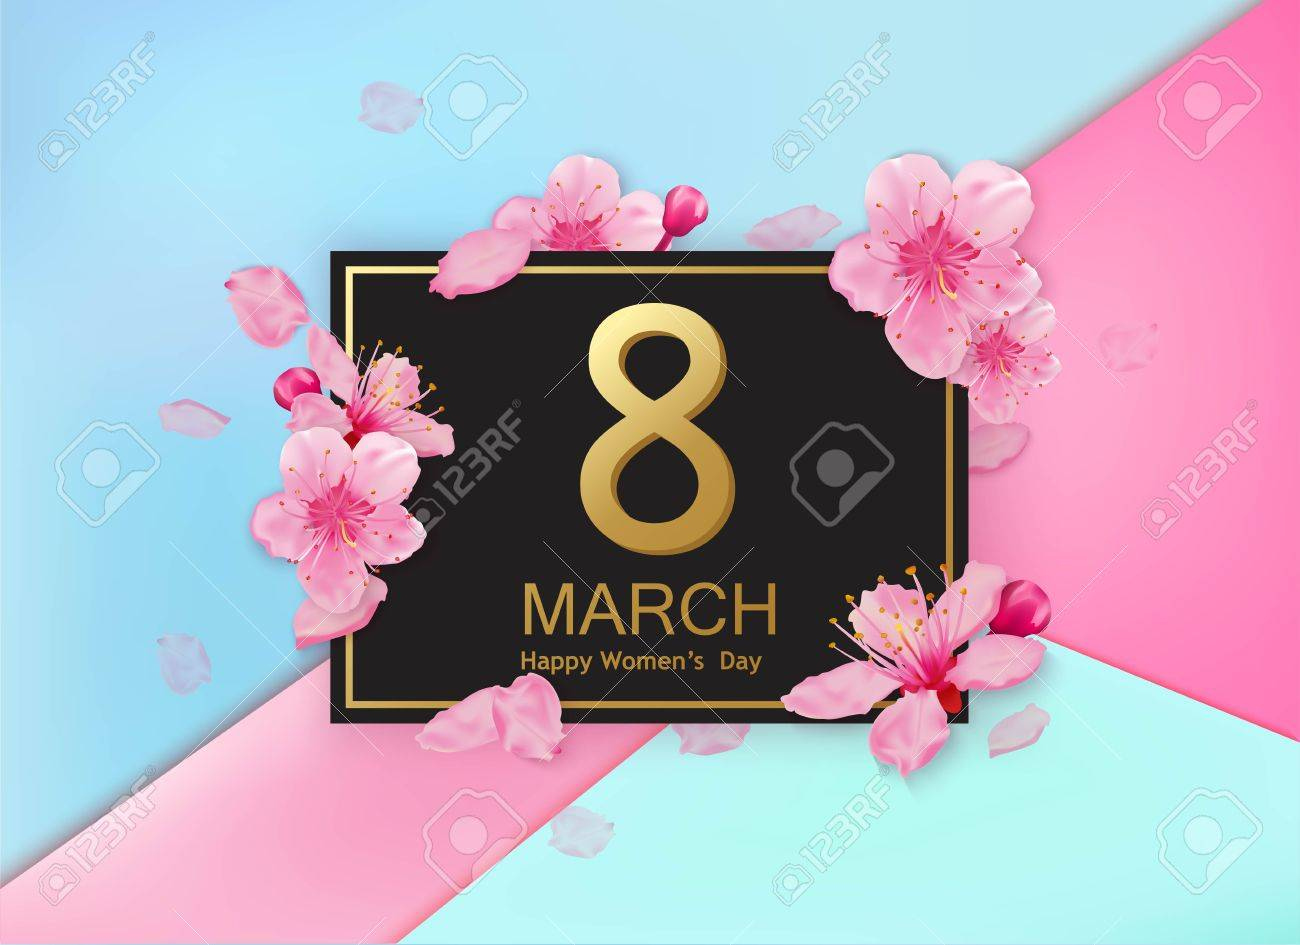 8 march modern design with flowers. Happy womens day stylish greeting card with cherry blossoms and petals. - 71587743